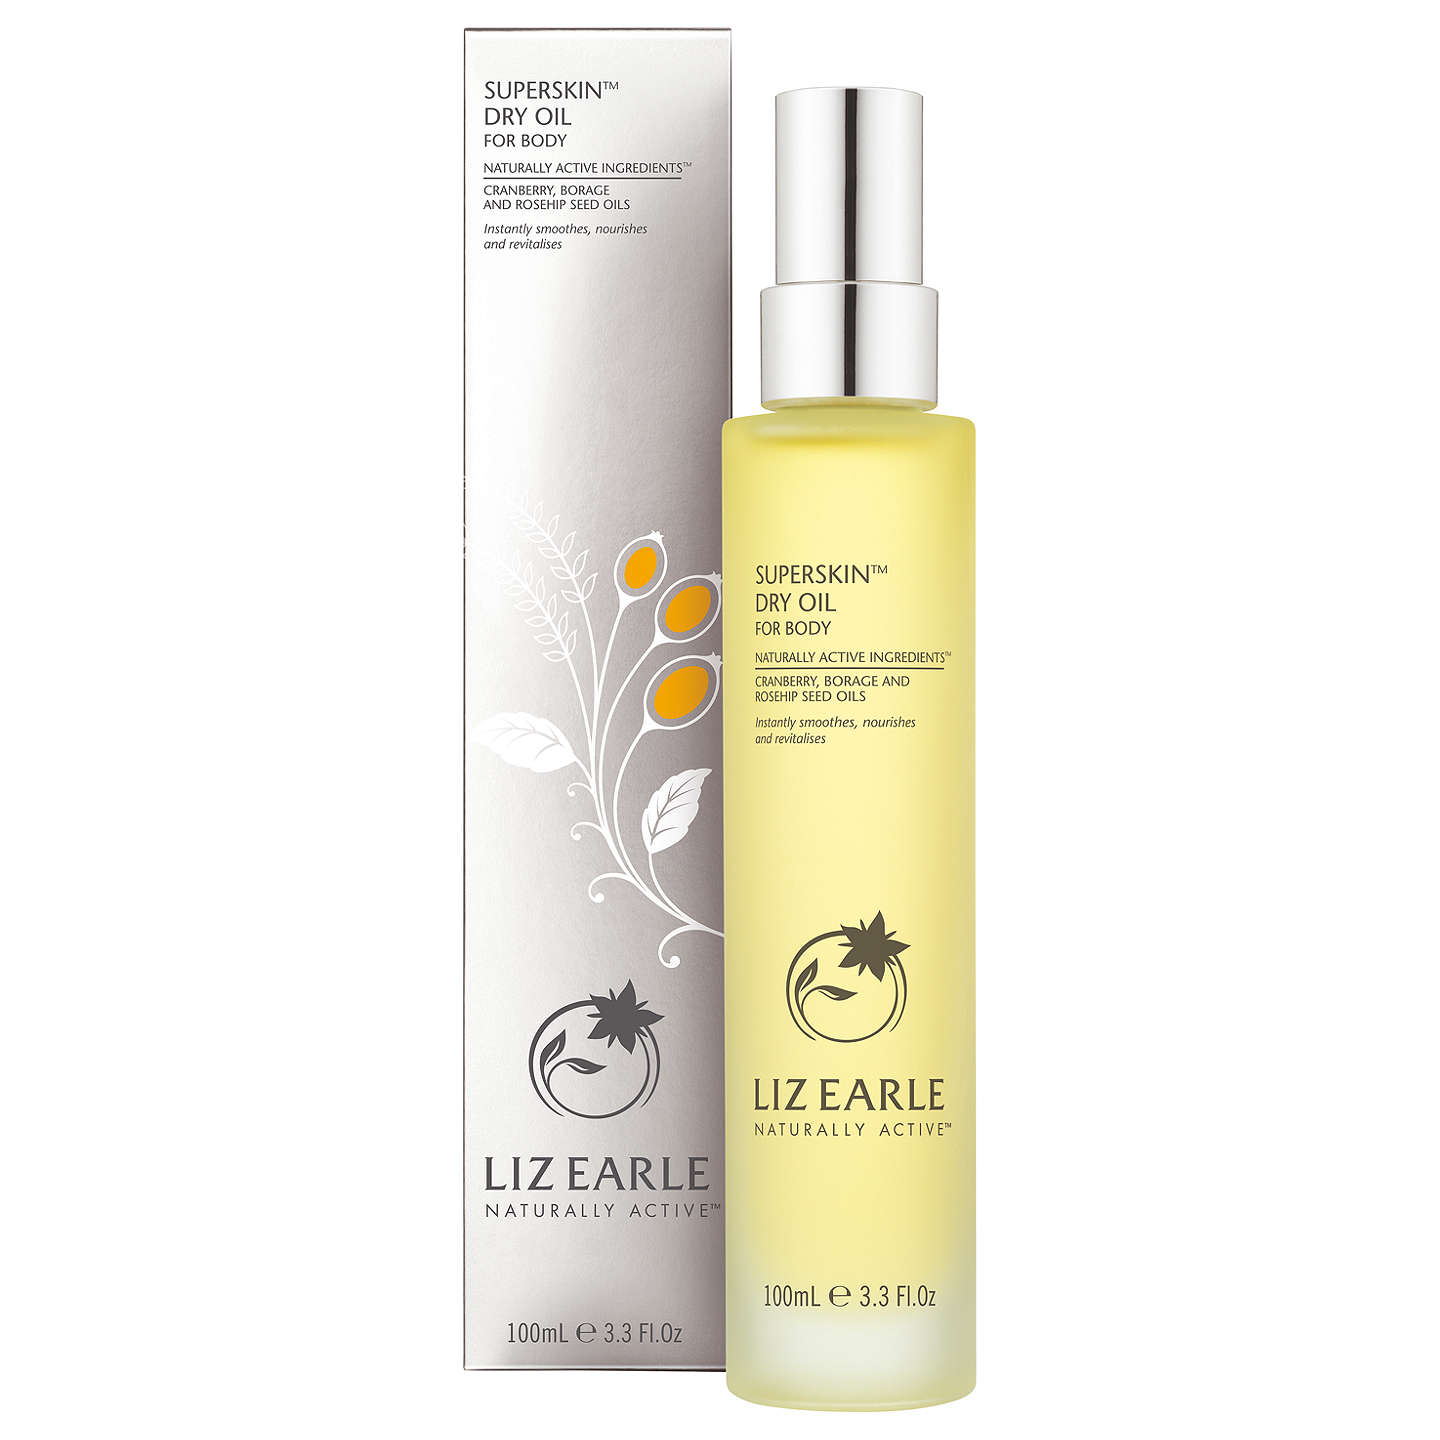 BuyLiz Earle Superskin™ Dry Oil for Body, 100ml Online at johnlewis.com